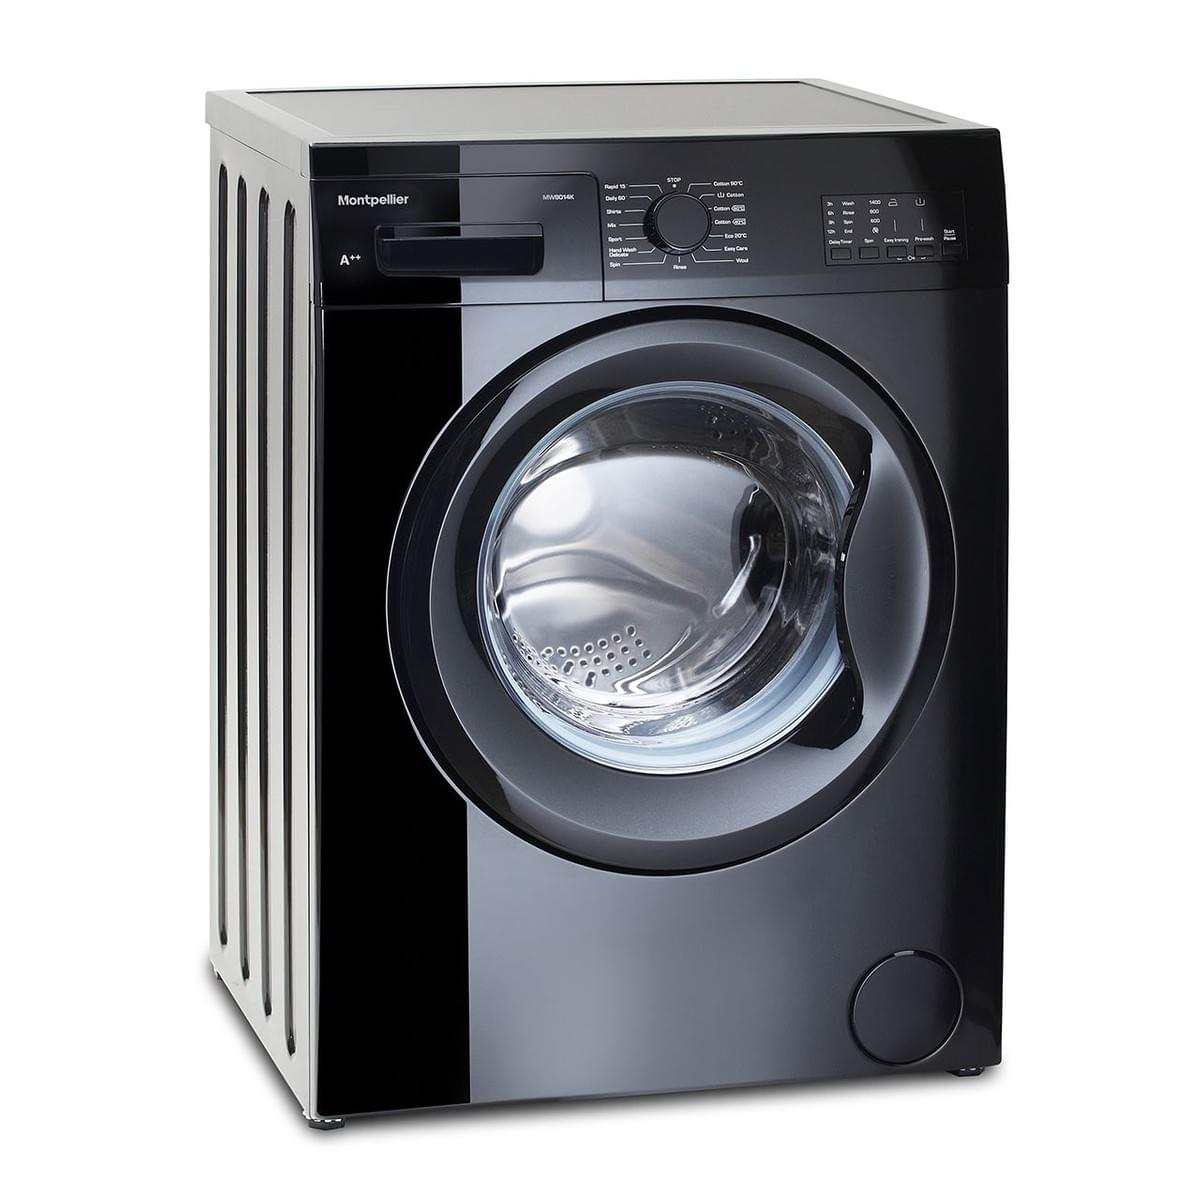 Montpellier washing machines in stock at M&G Energy